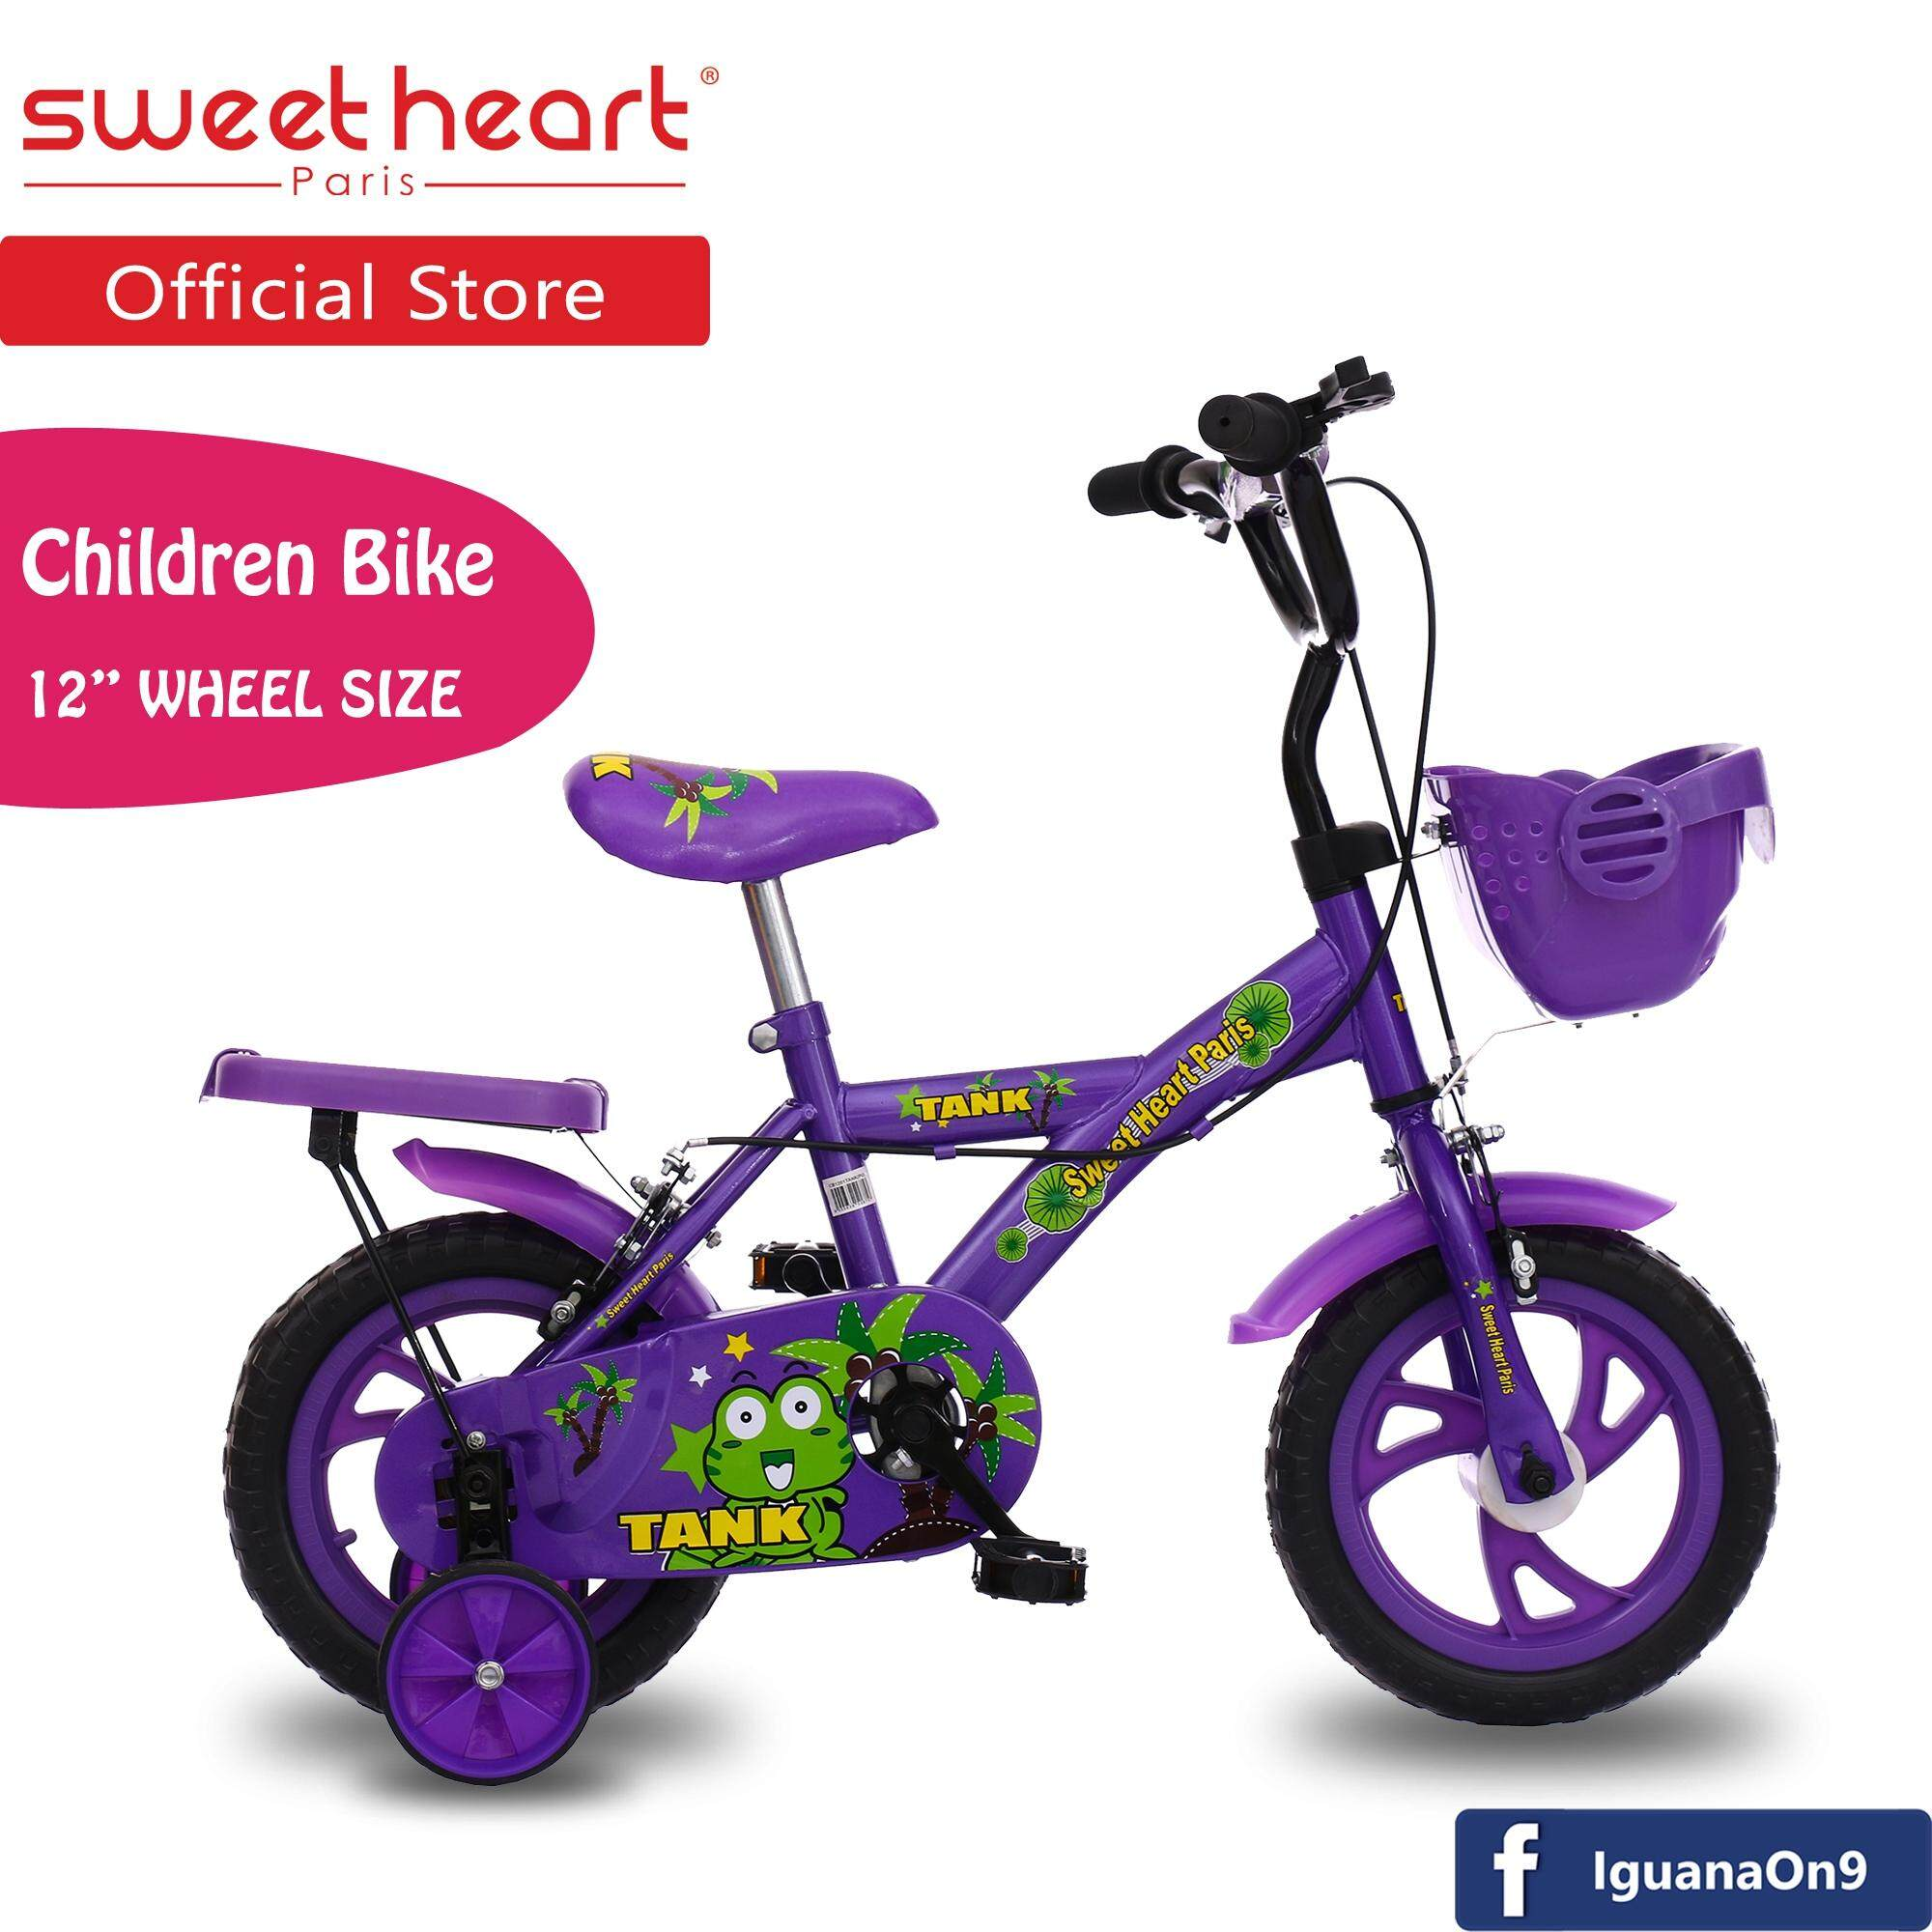 Sweet Heart Paris CB1201 TANK Children Bicycle (New Purple) For Children Age 2 To 4 Years